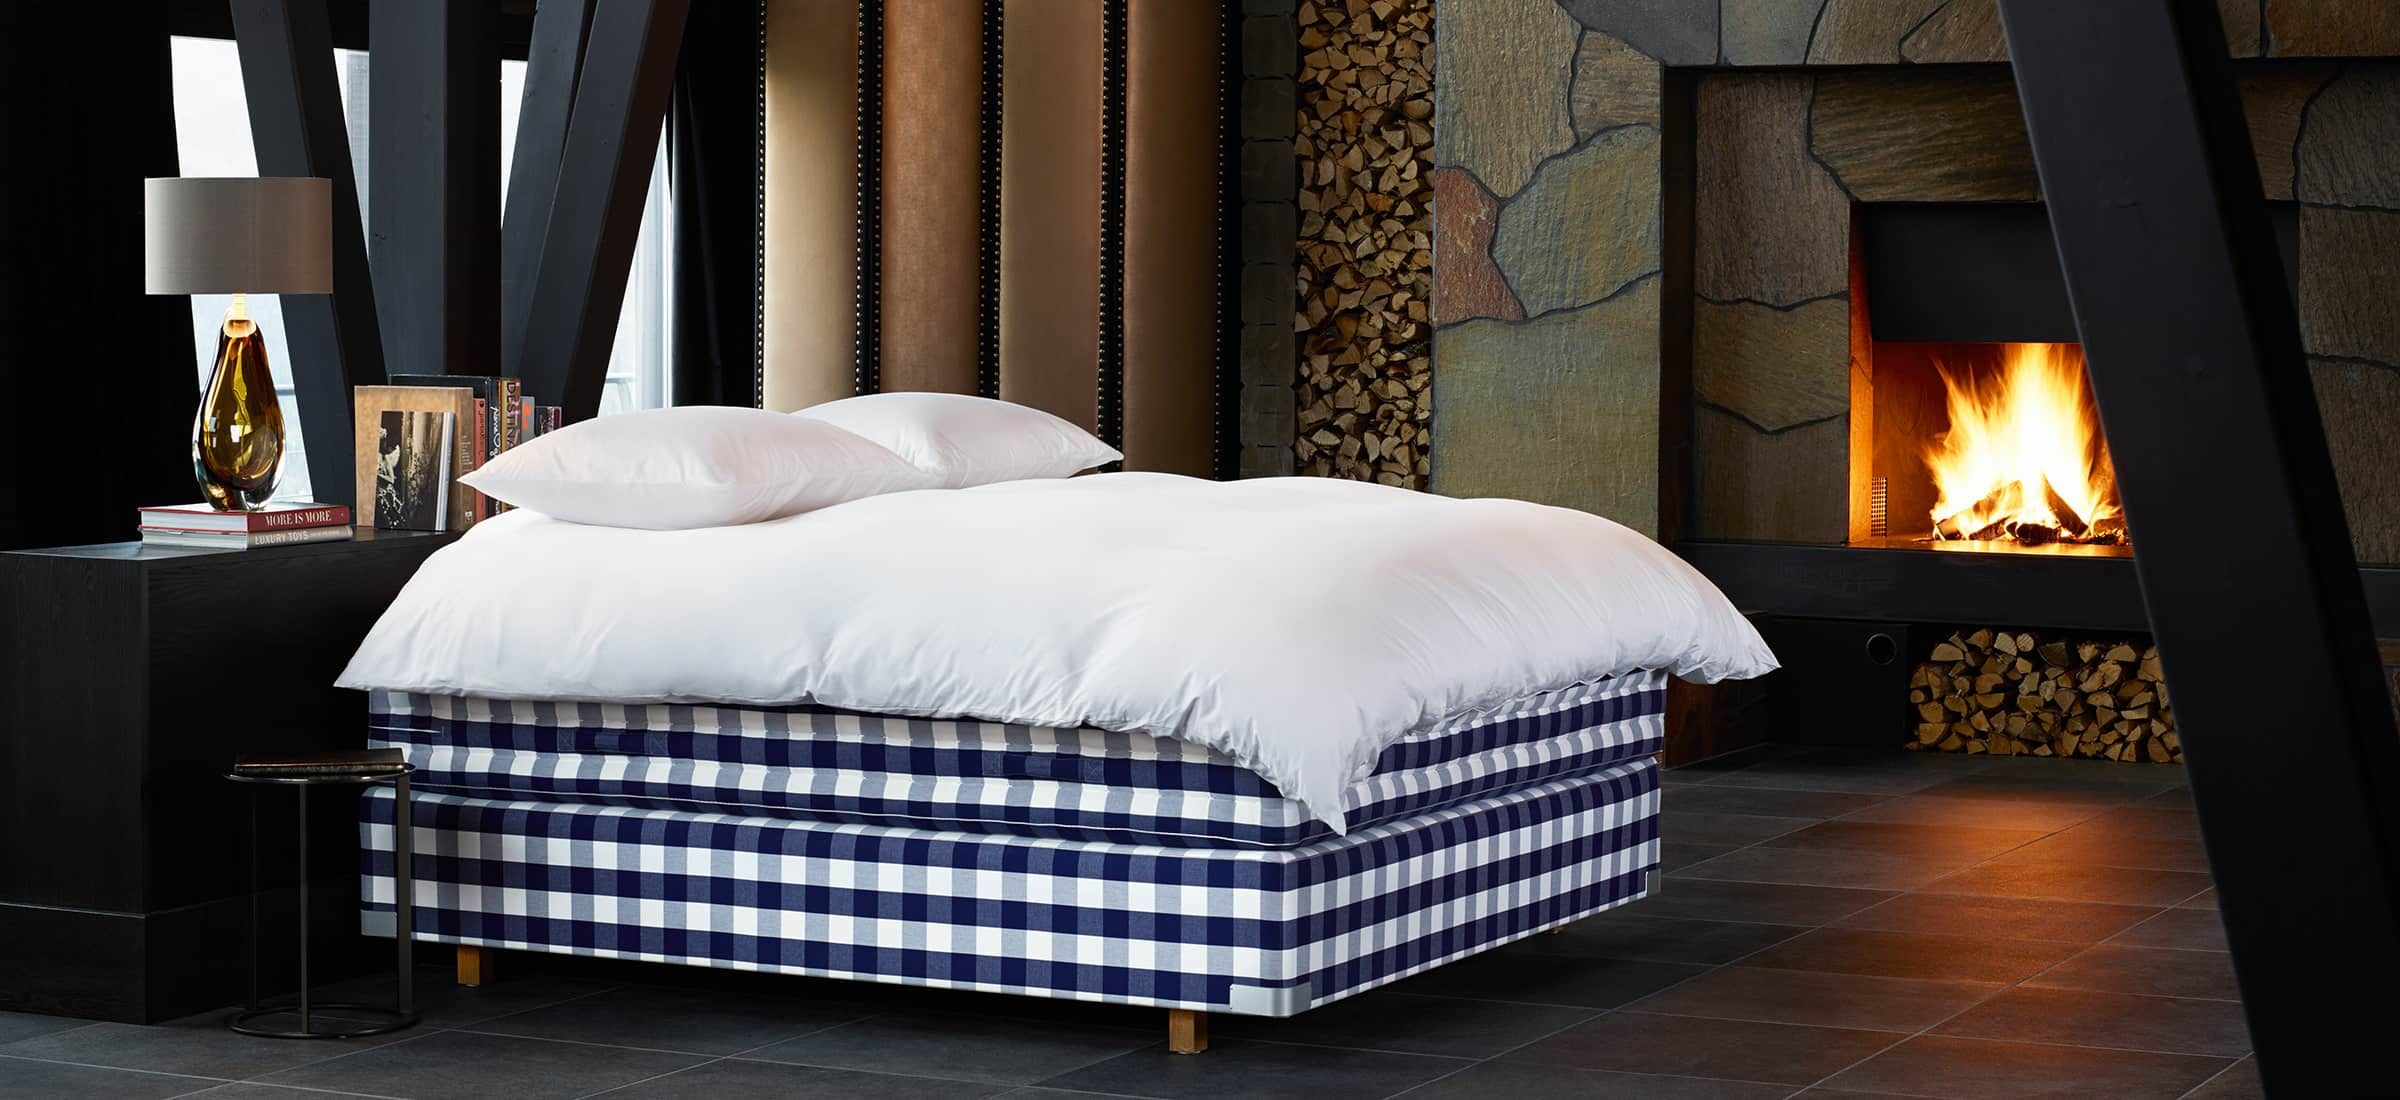 Is The Hästens Vividus The World\'s Most Luxurious Bed? #luxury #home ...